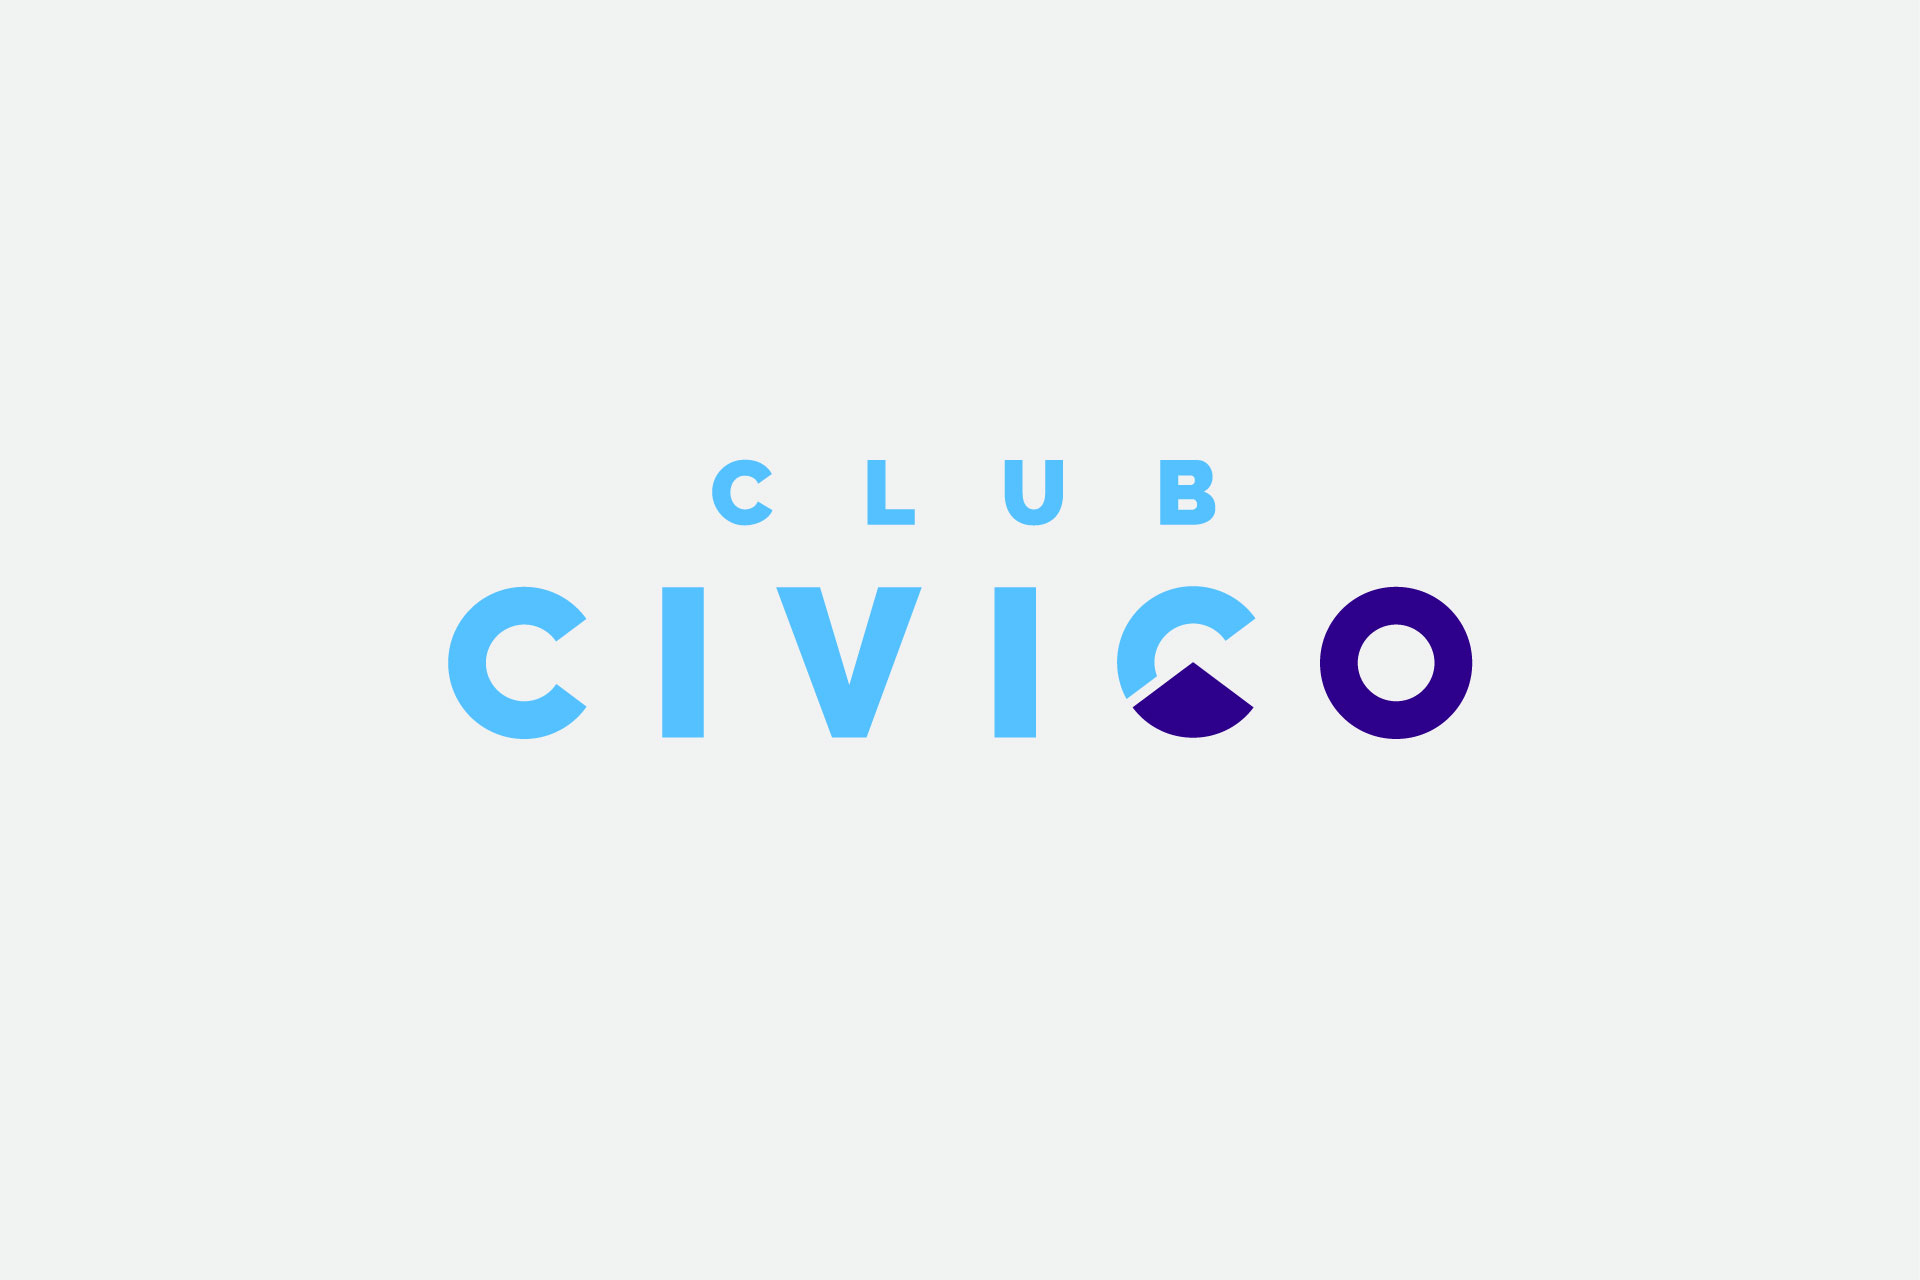 CLUB-CIVICO-light-grey-bckgd.jpg